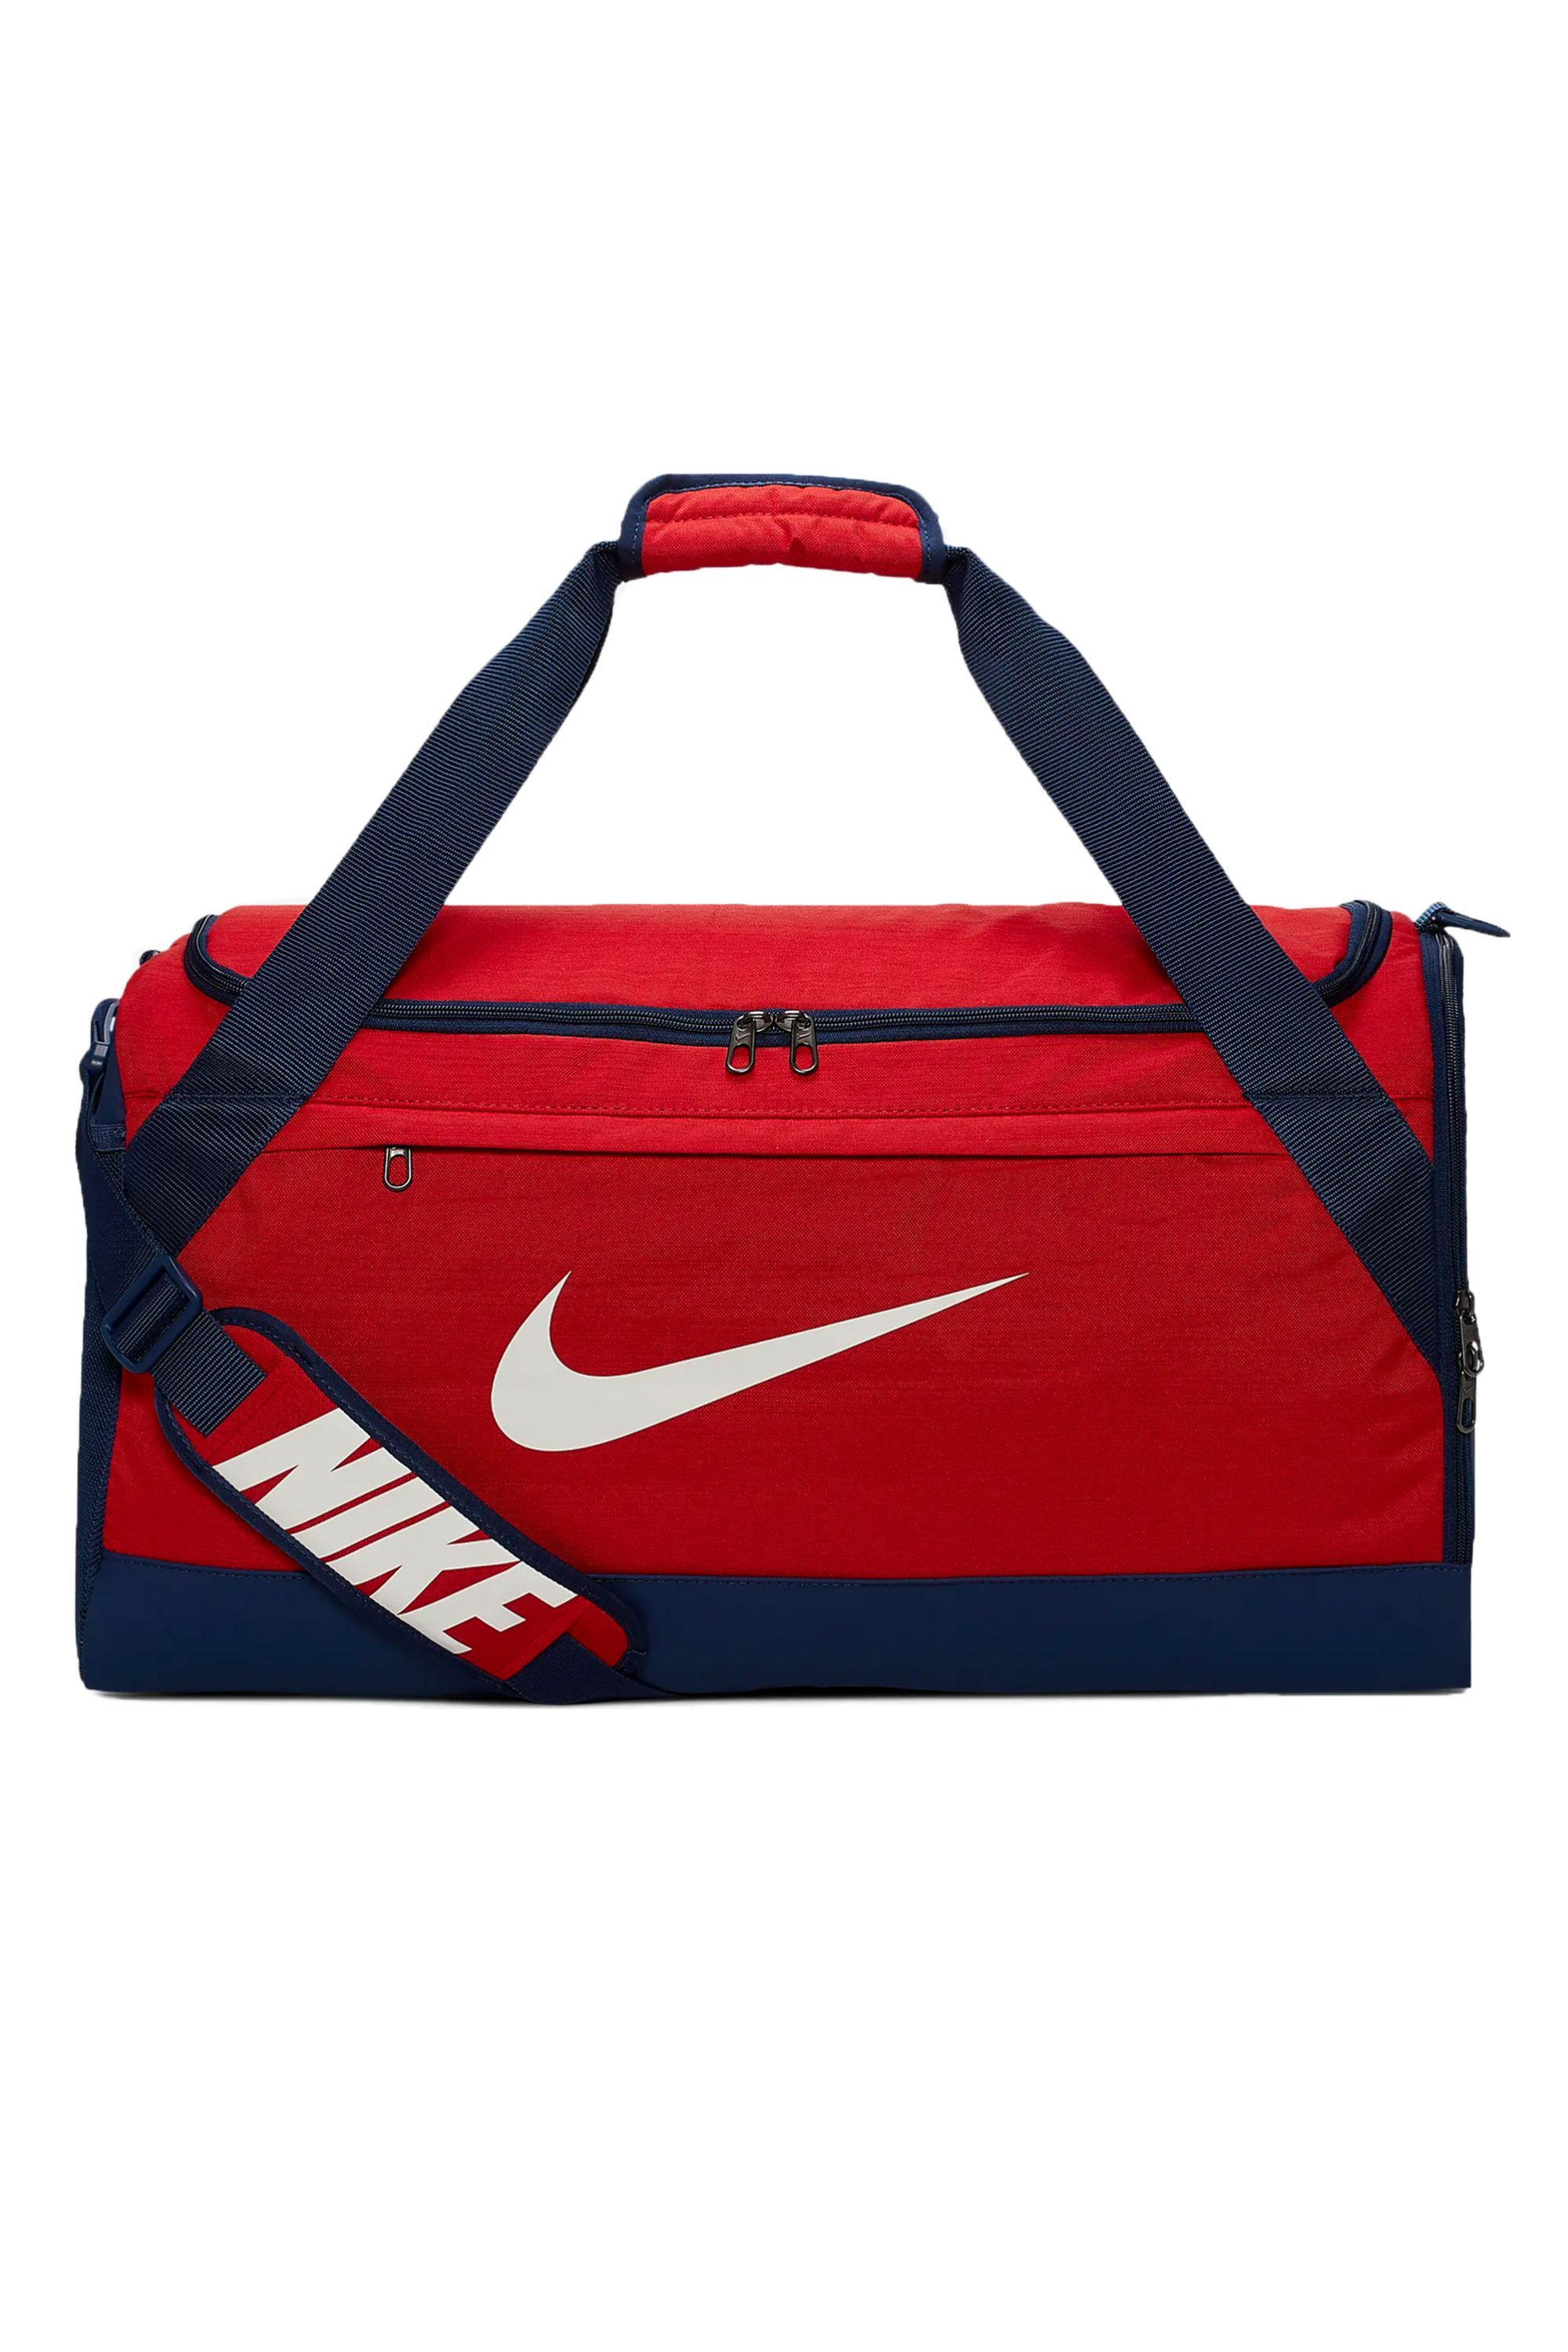 Training Duffel Bag Nike nike.com $40.00 SHOP NOW This cool gym bag will make him want to go to the gym.